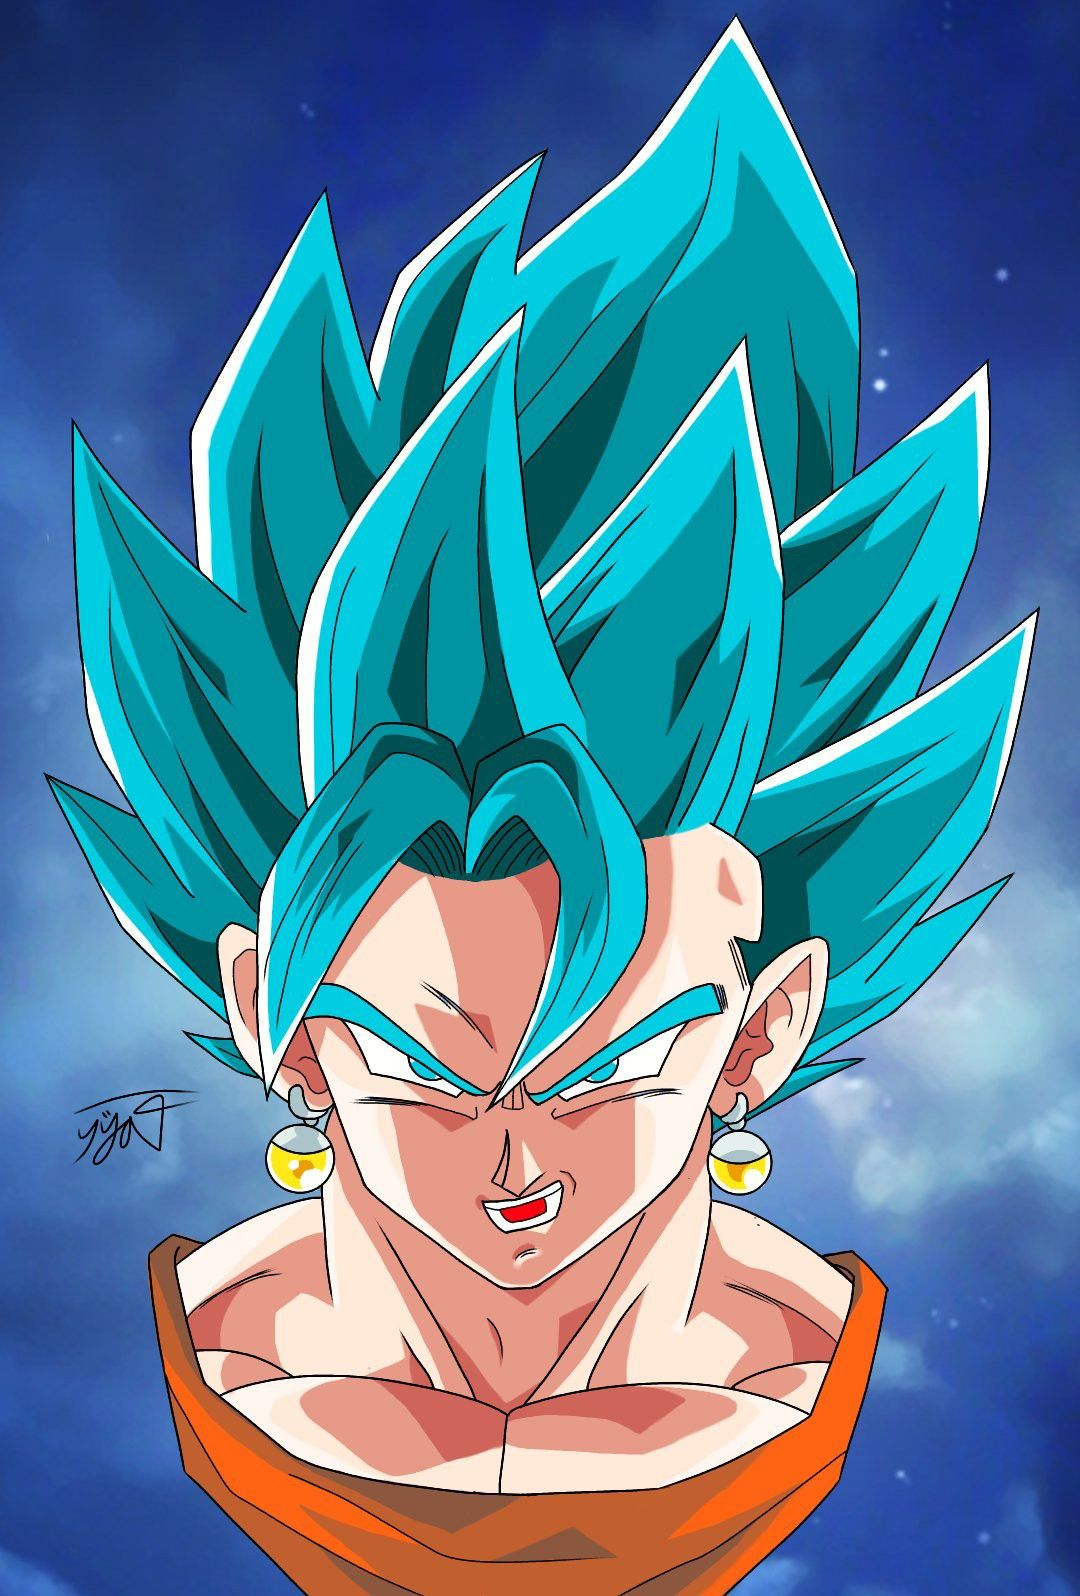 Pin by Stacey Green on vegito blue in 2020 (With images